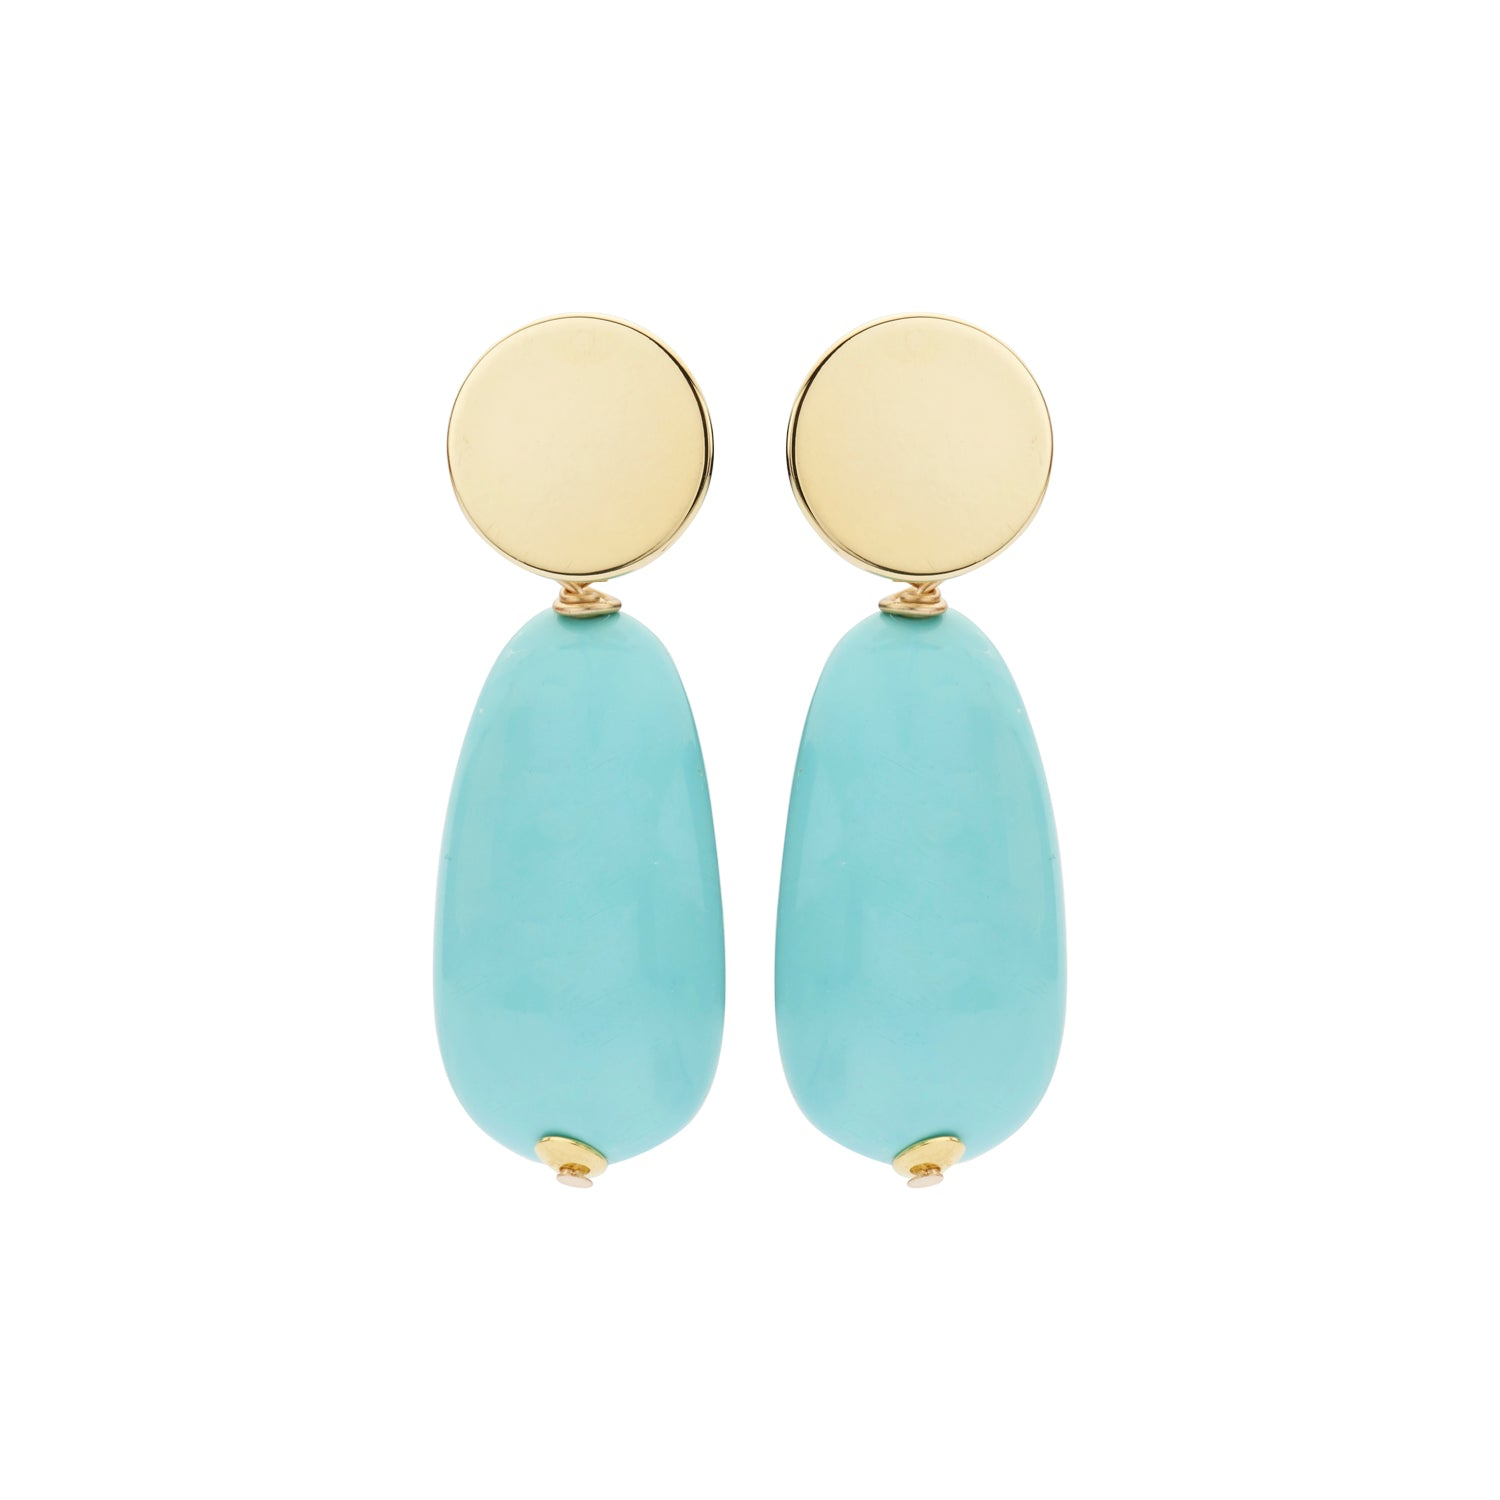 Long oval menon turquoise earrings - Souvenirs de Pomme